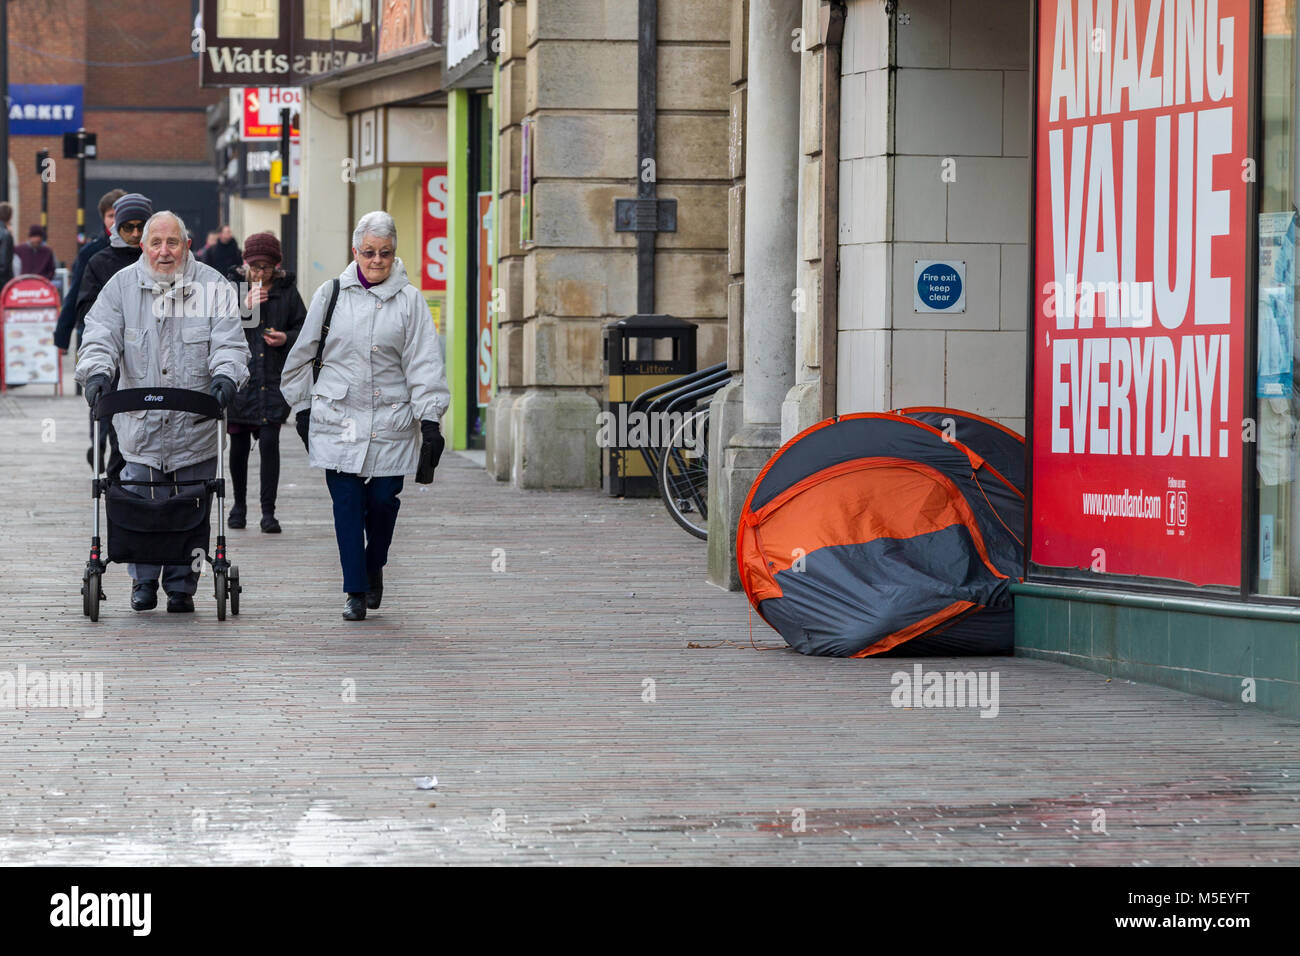 North&ton U.K. 23rd February 2018. Weather. Homeless living in a tent in a & Homeless Tent Uk Stock Photos u0026 Homeless Tent Uk Stock Images - Alamy